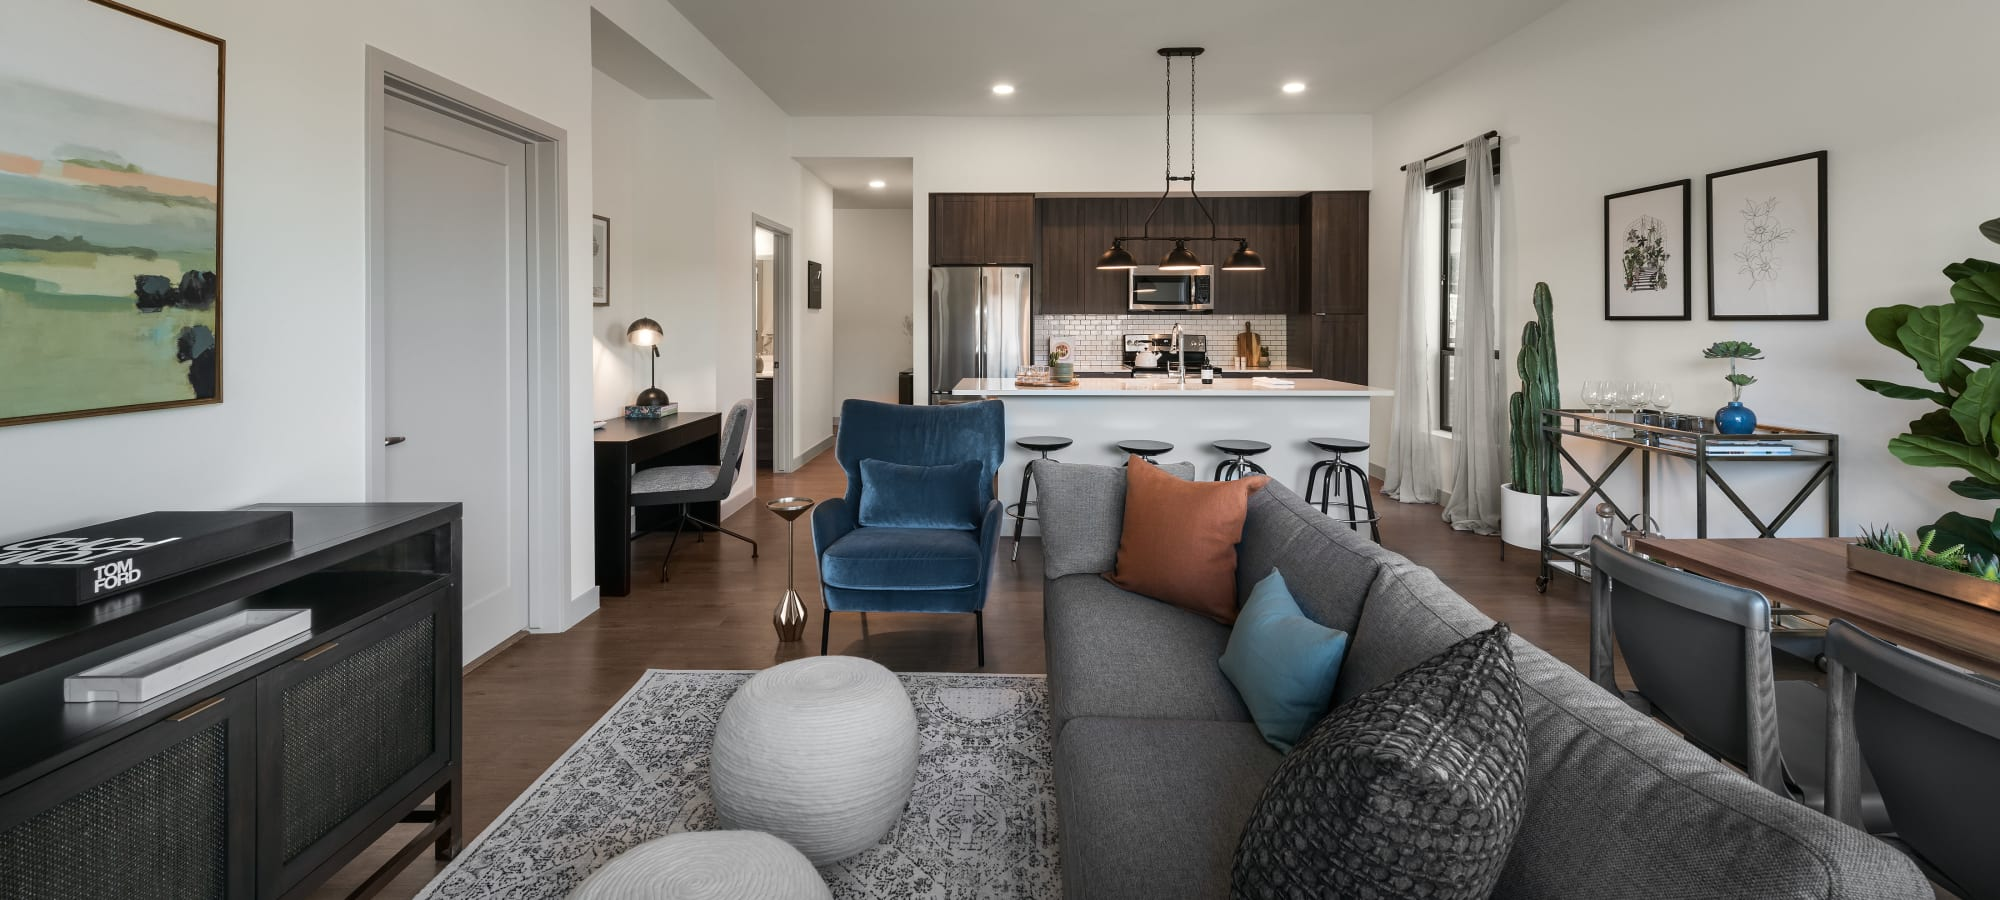 Open floorplan at The Astor at Osborn in Phoenix, Arizona